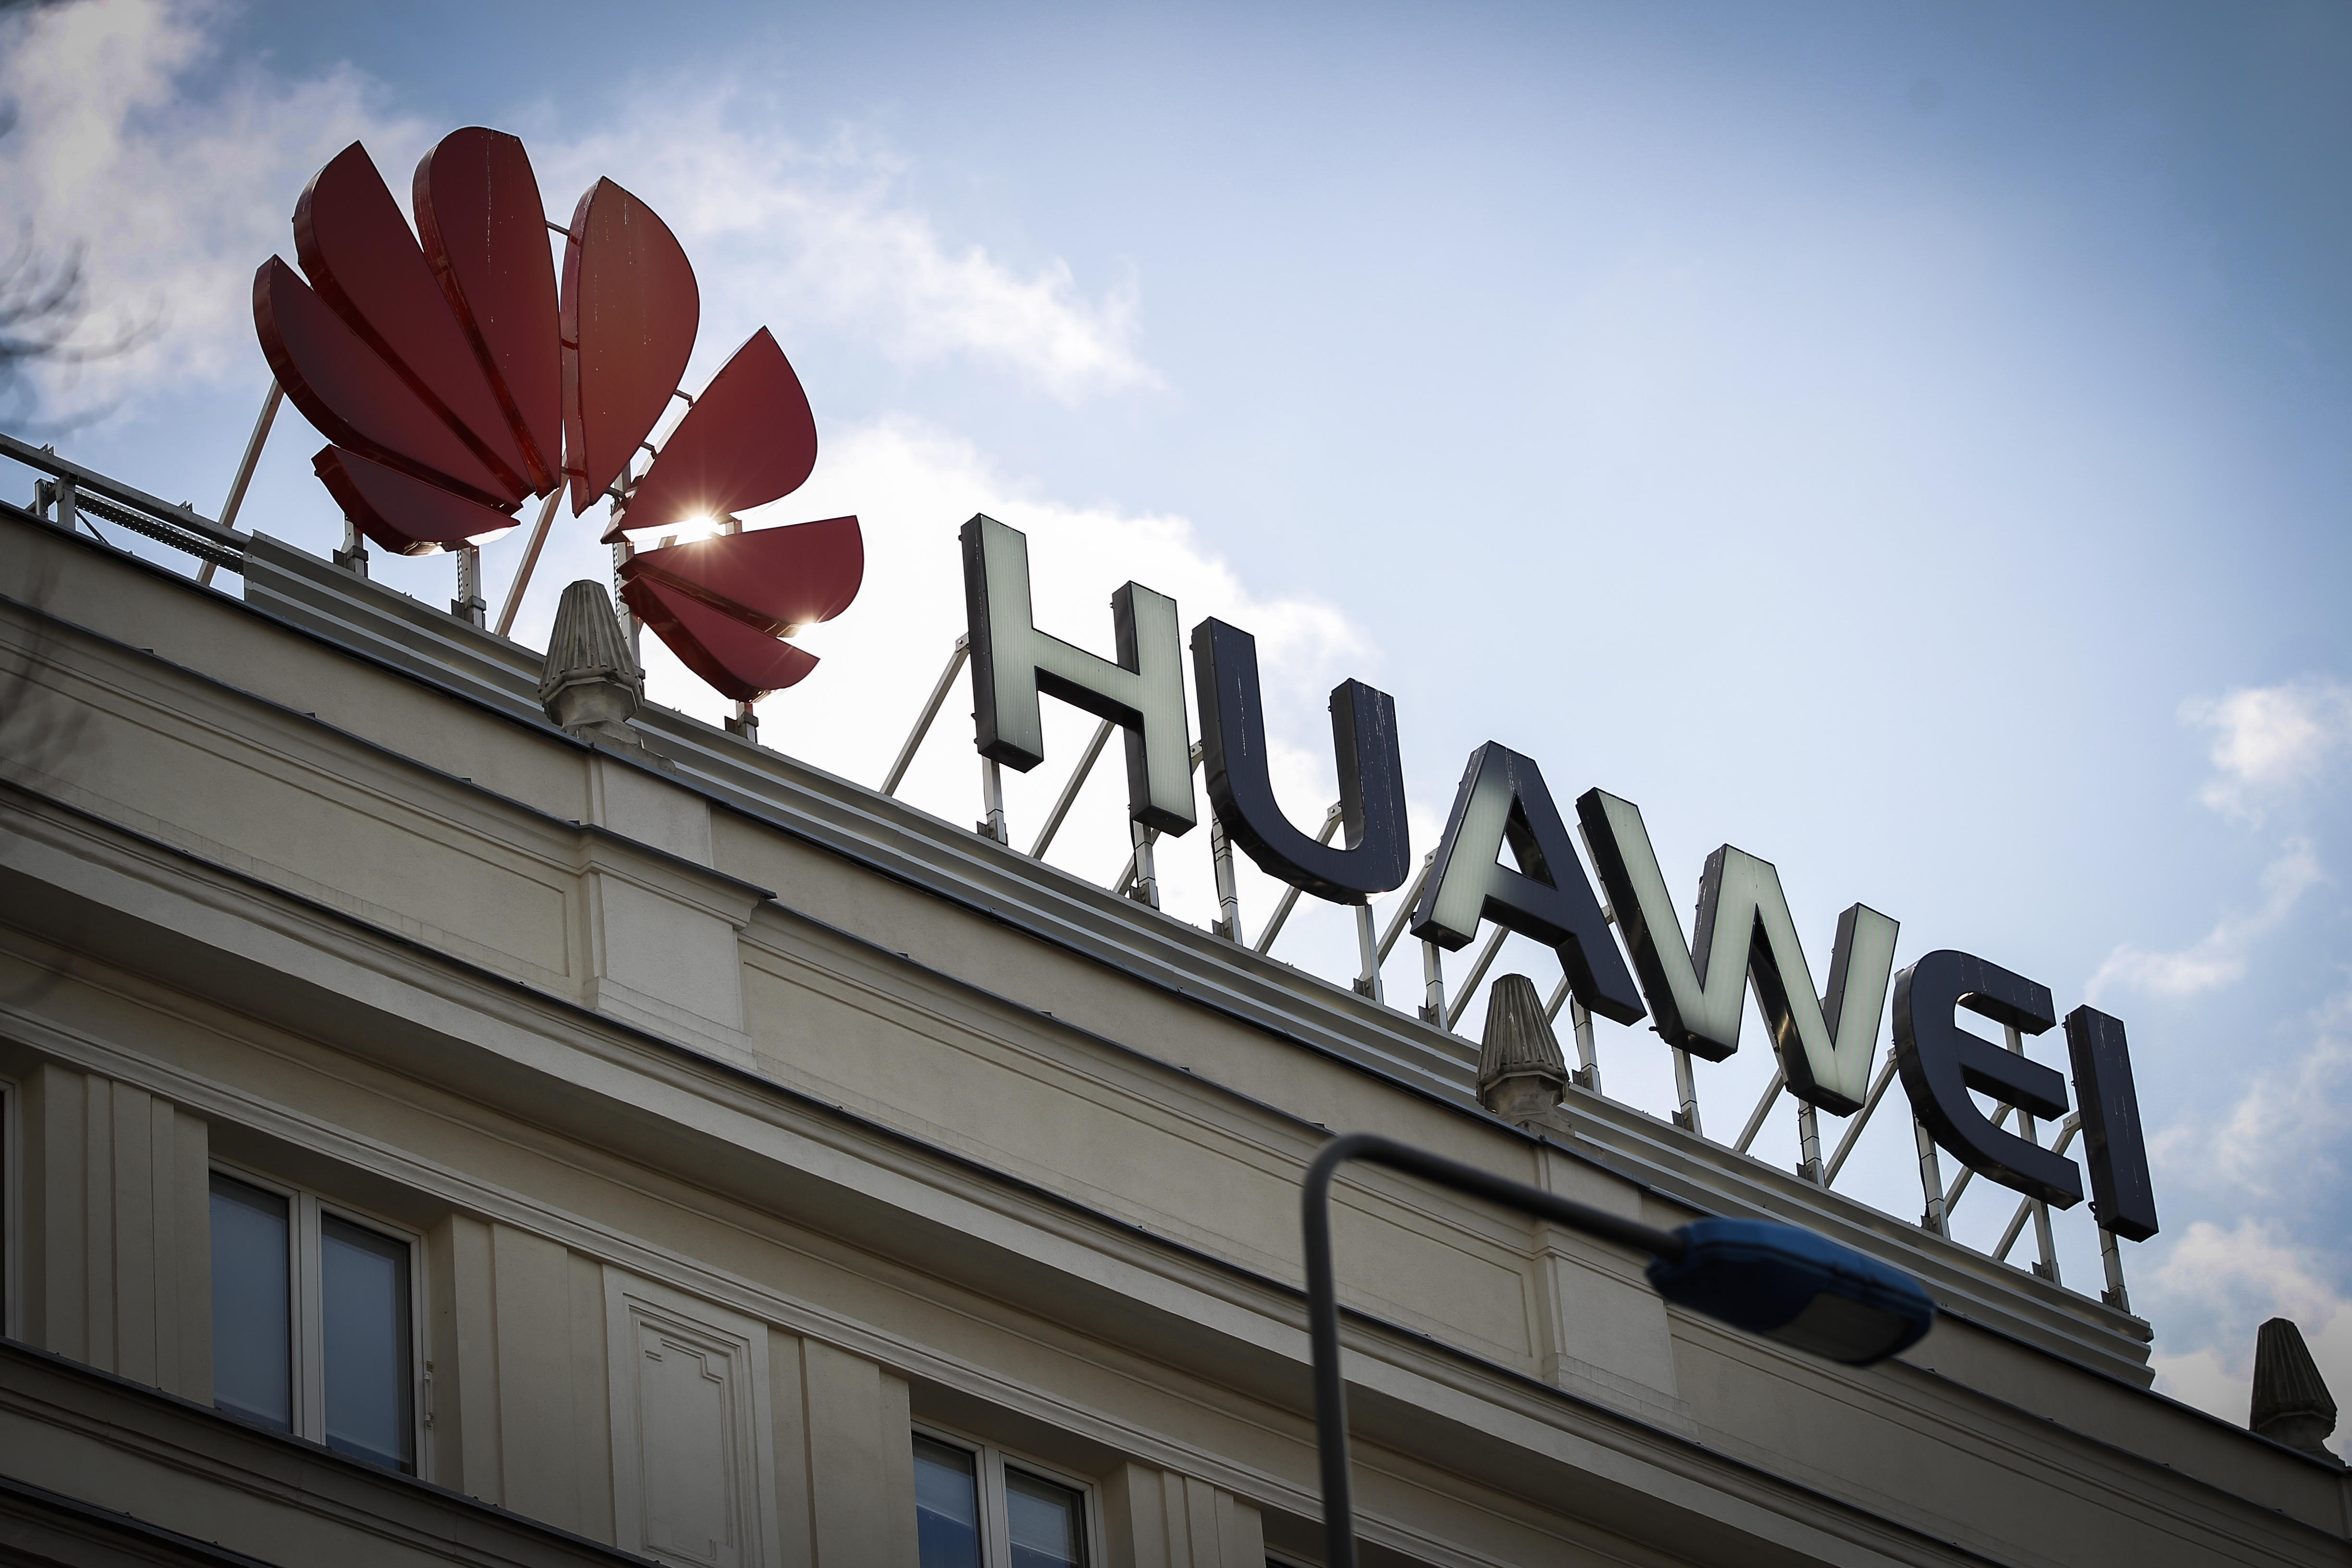 Huawei Founder Breaks Silence To Deny Spying